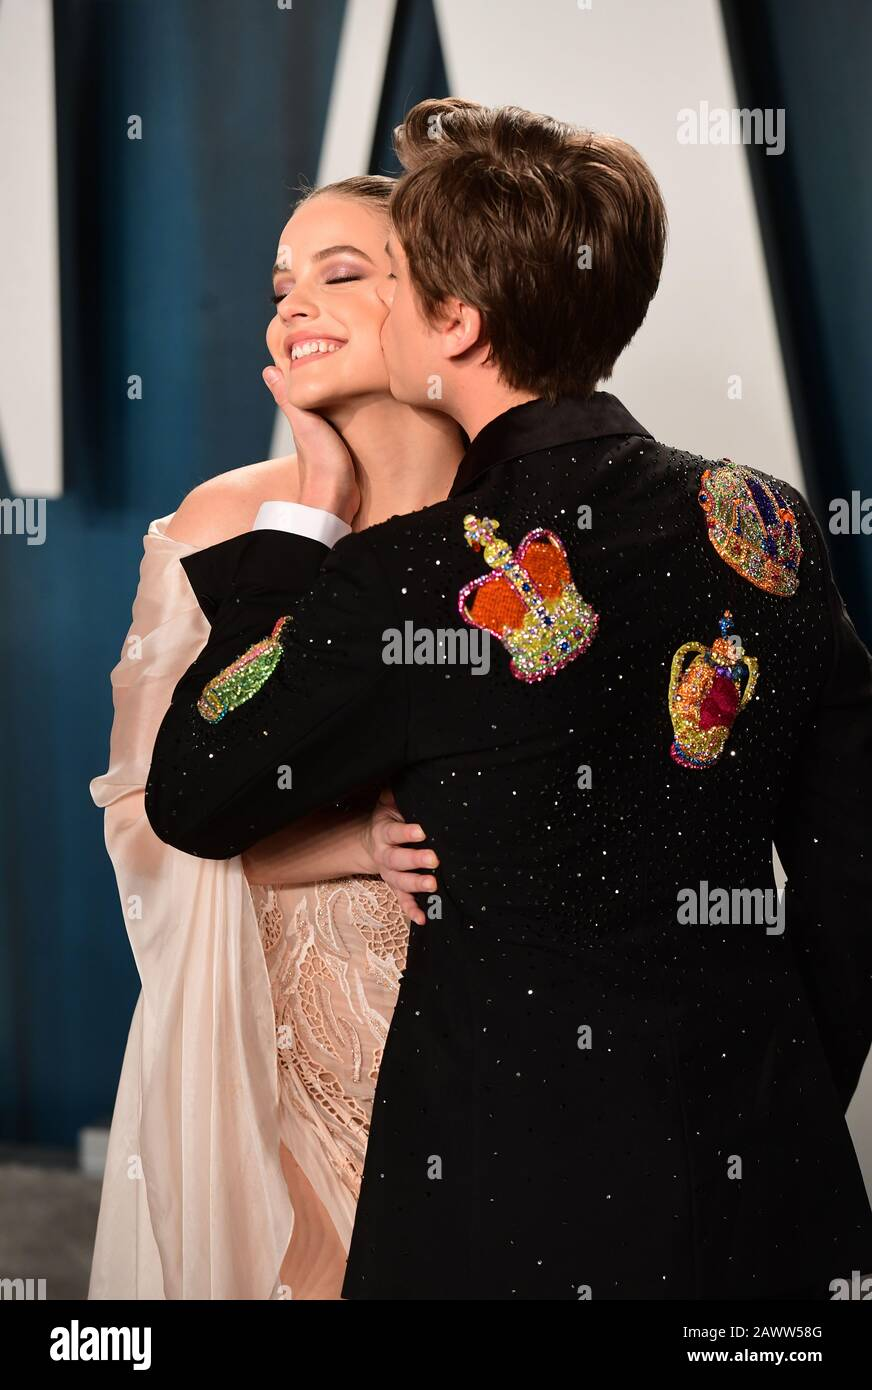 Barbara Palvin And Dylan Sprouse Attending The Vanity Fair Oscar Party Held At The Wallis Annenberg Center For The Performing Arts In Beverly Hills Los Angeles California Usa Stock Photo Alamy